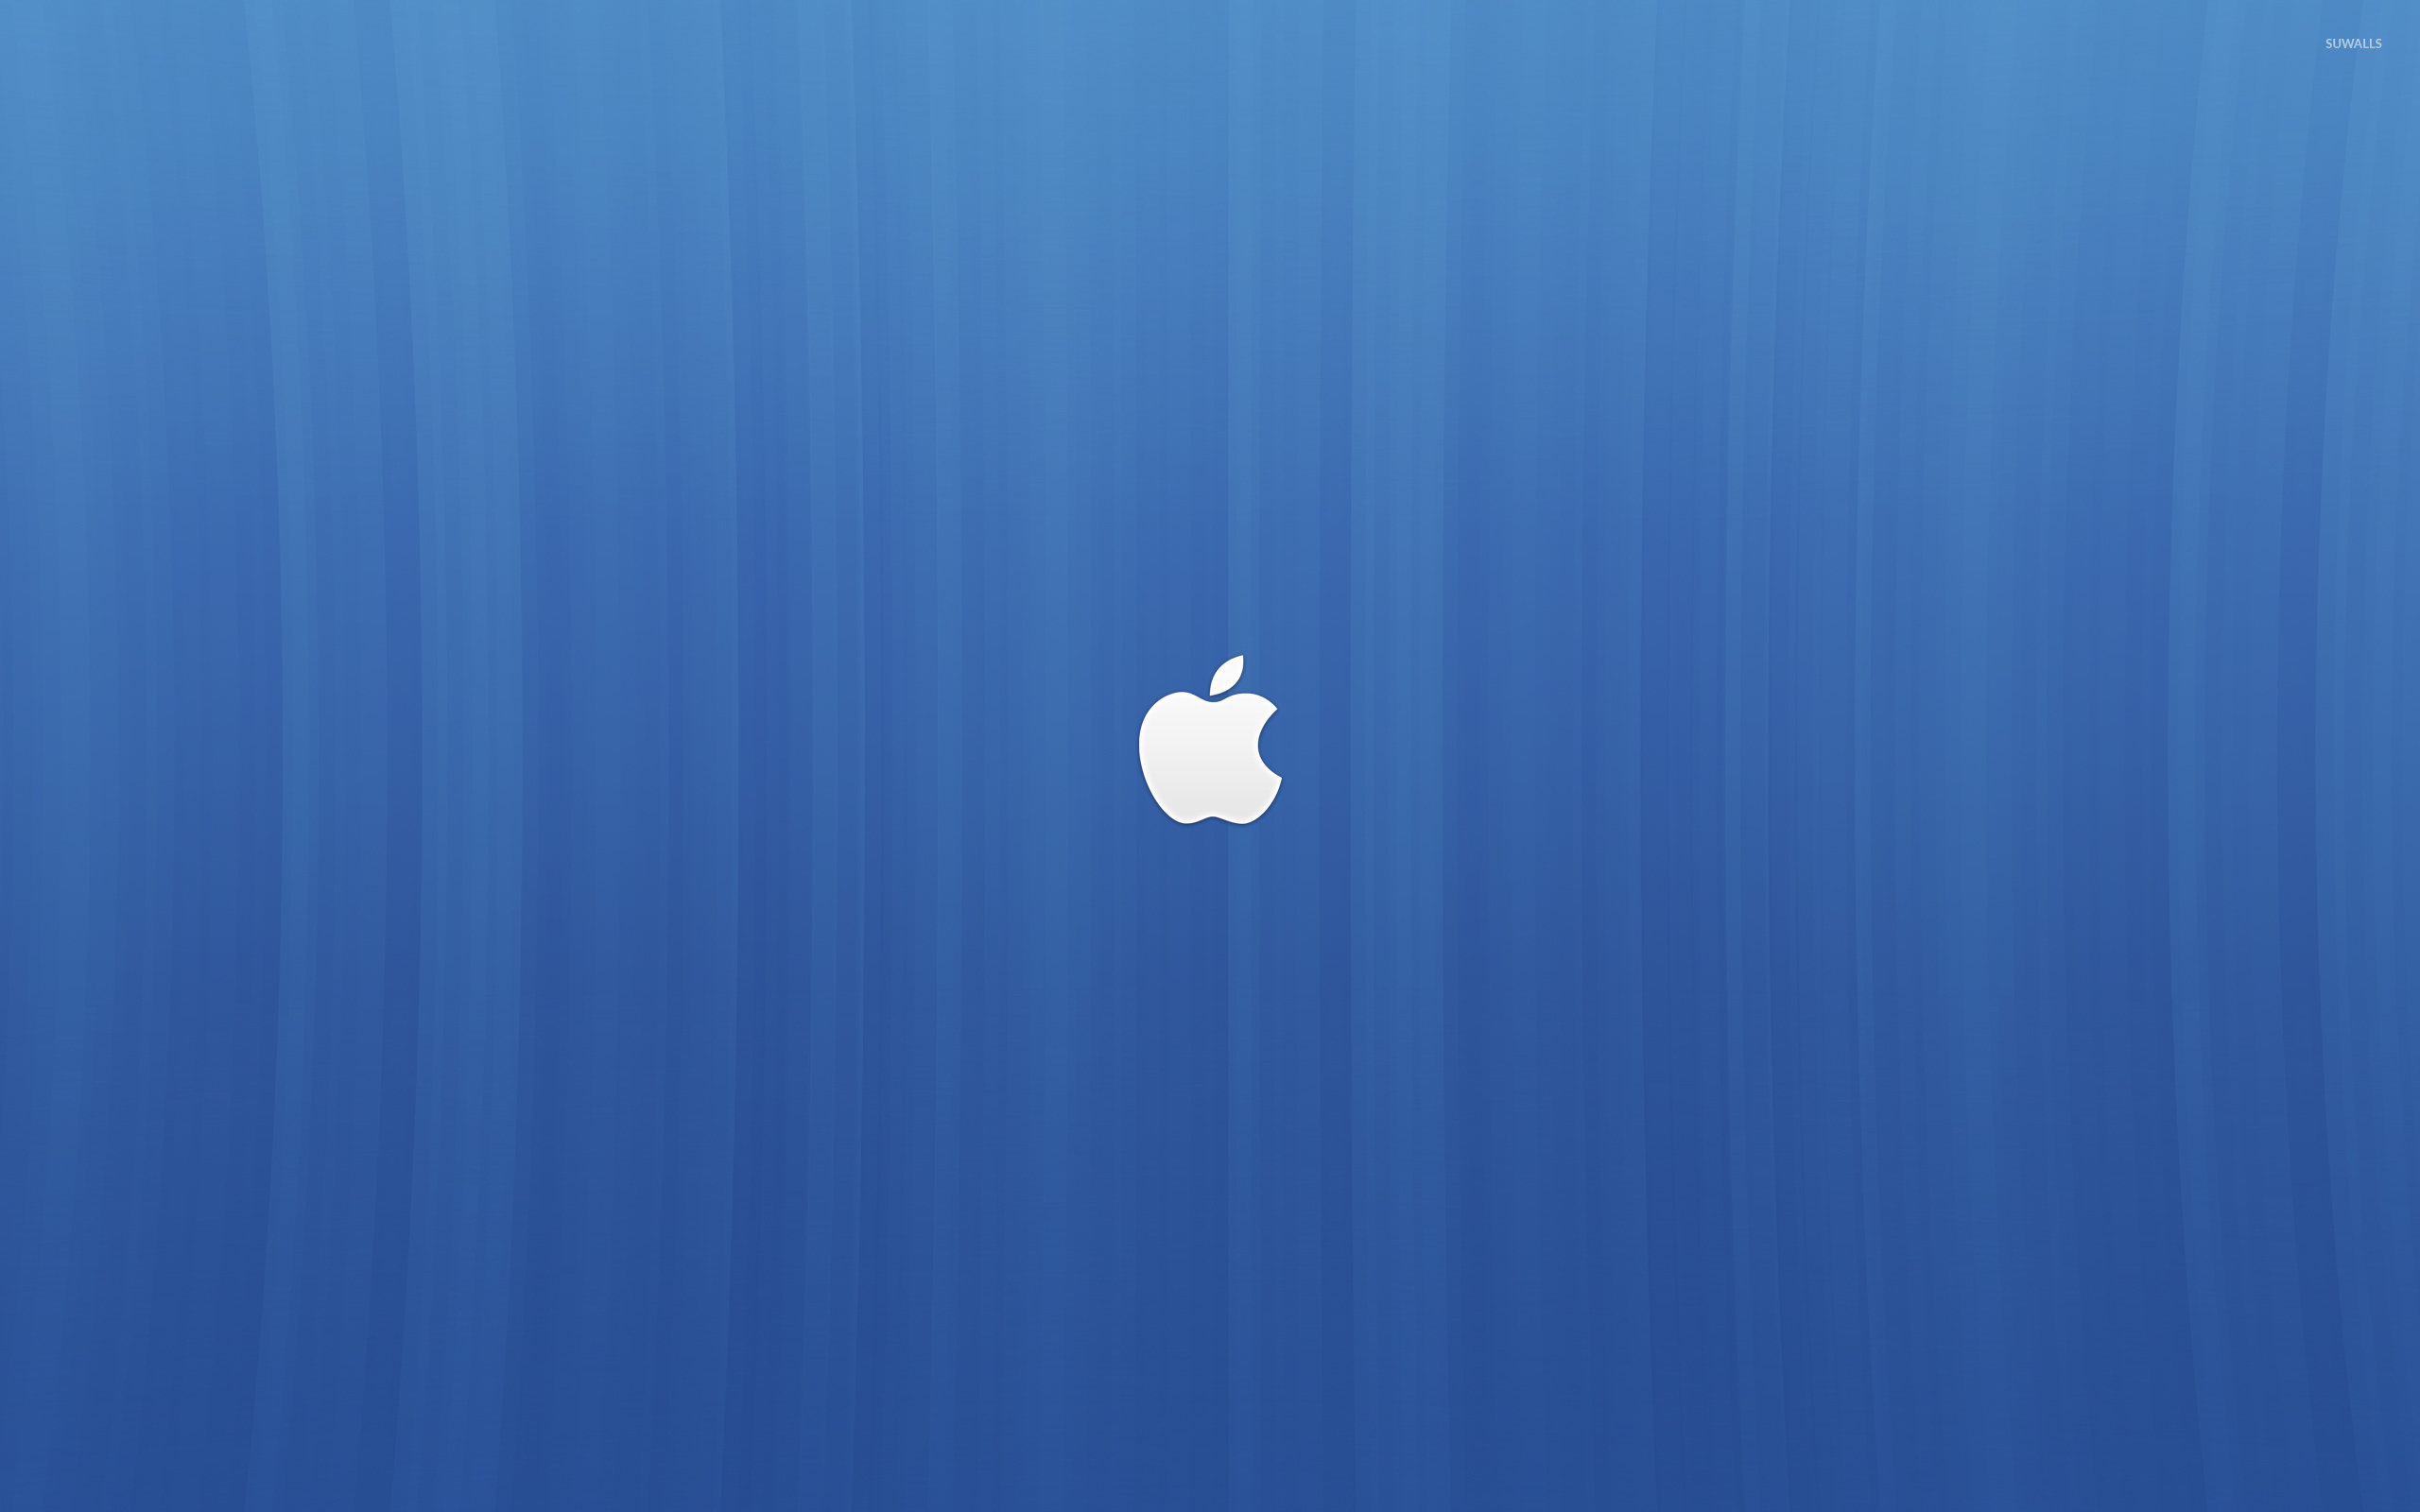 white apple logo on blue lines wallpaper - computer wallpapers - #54107